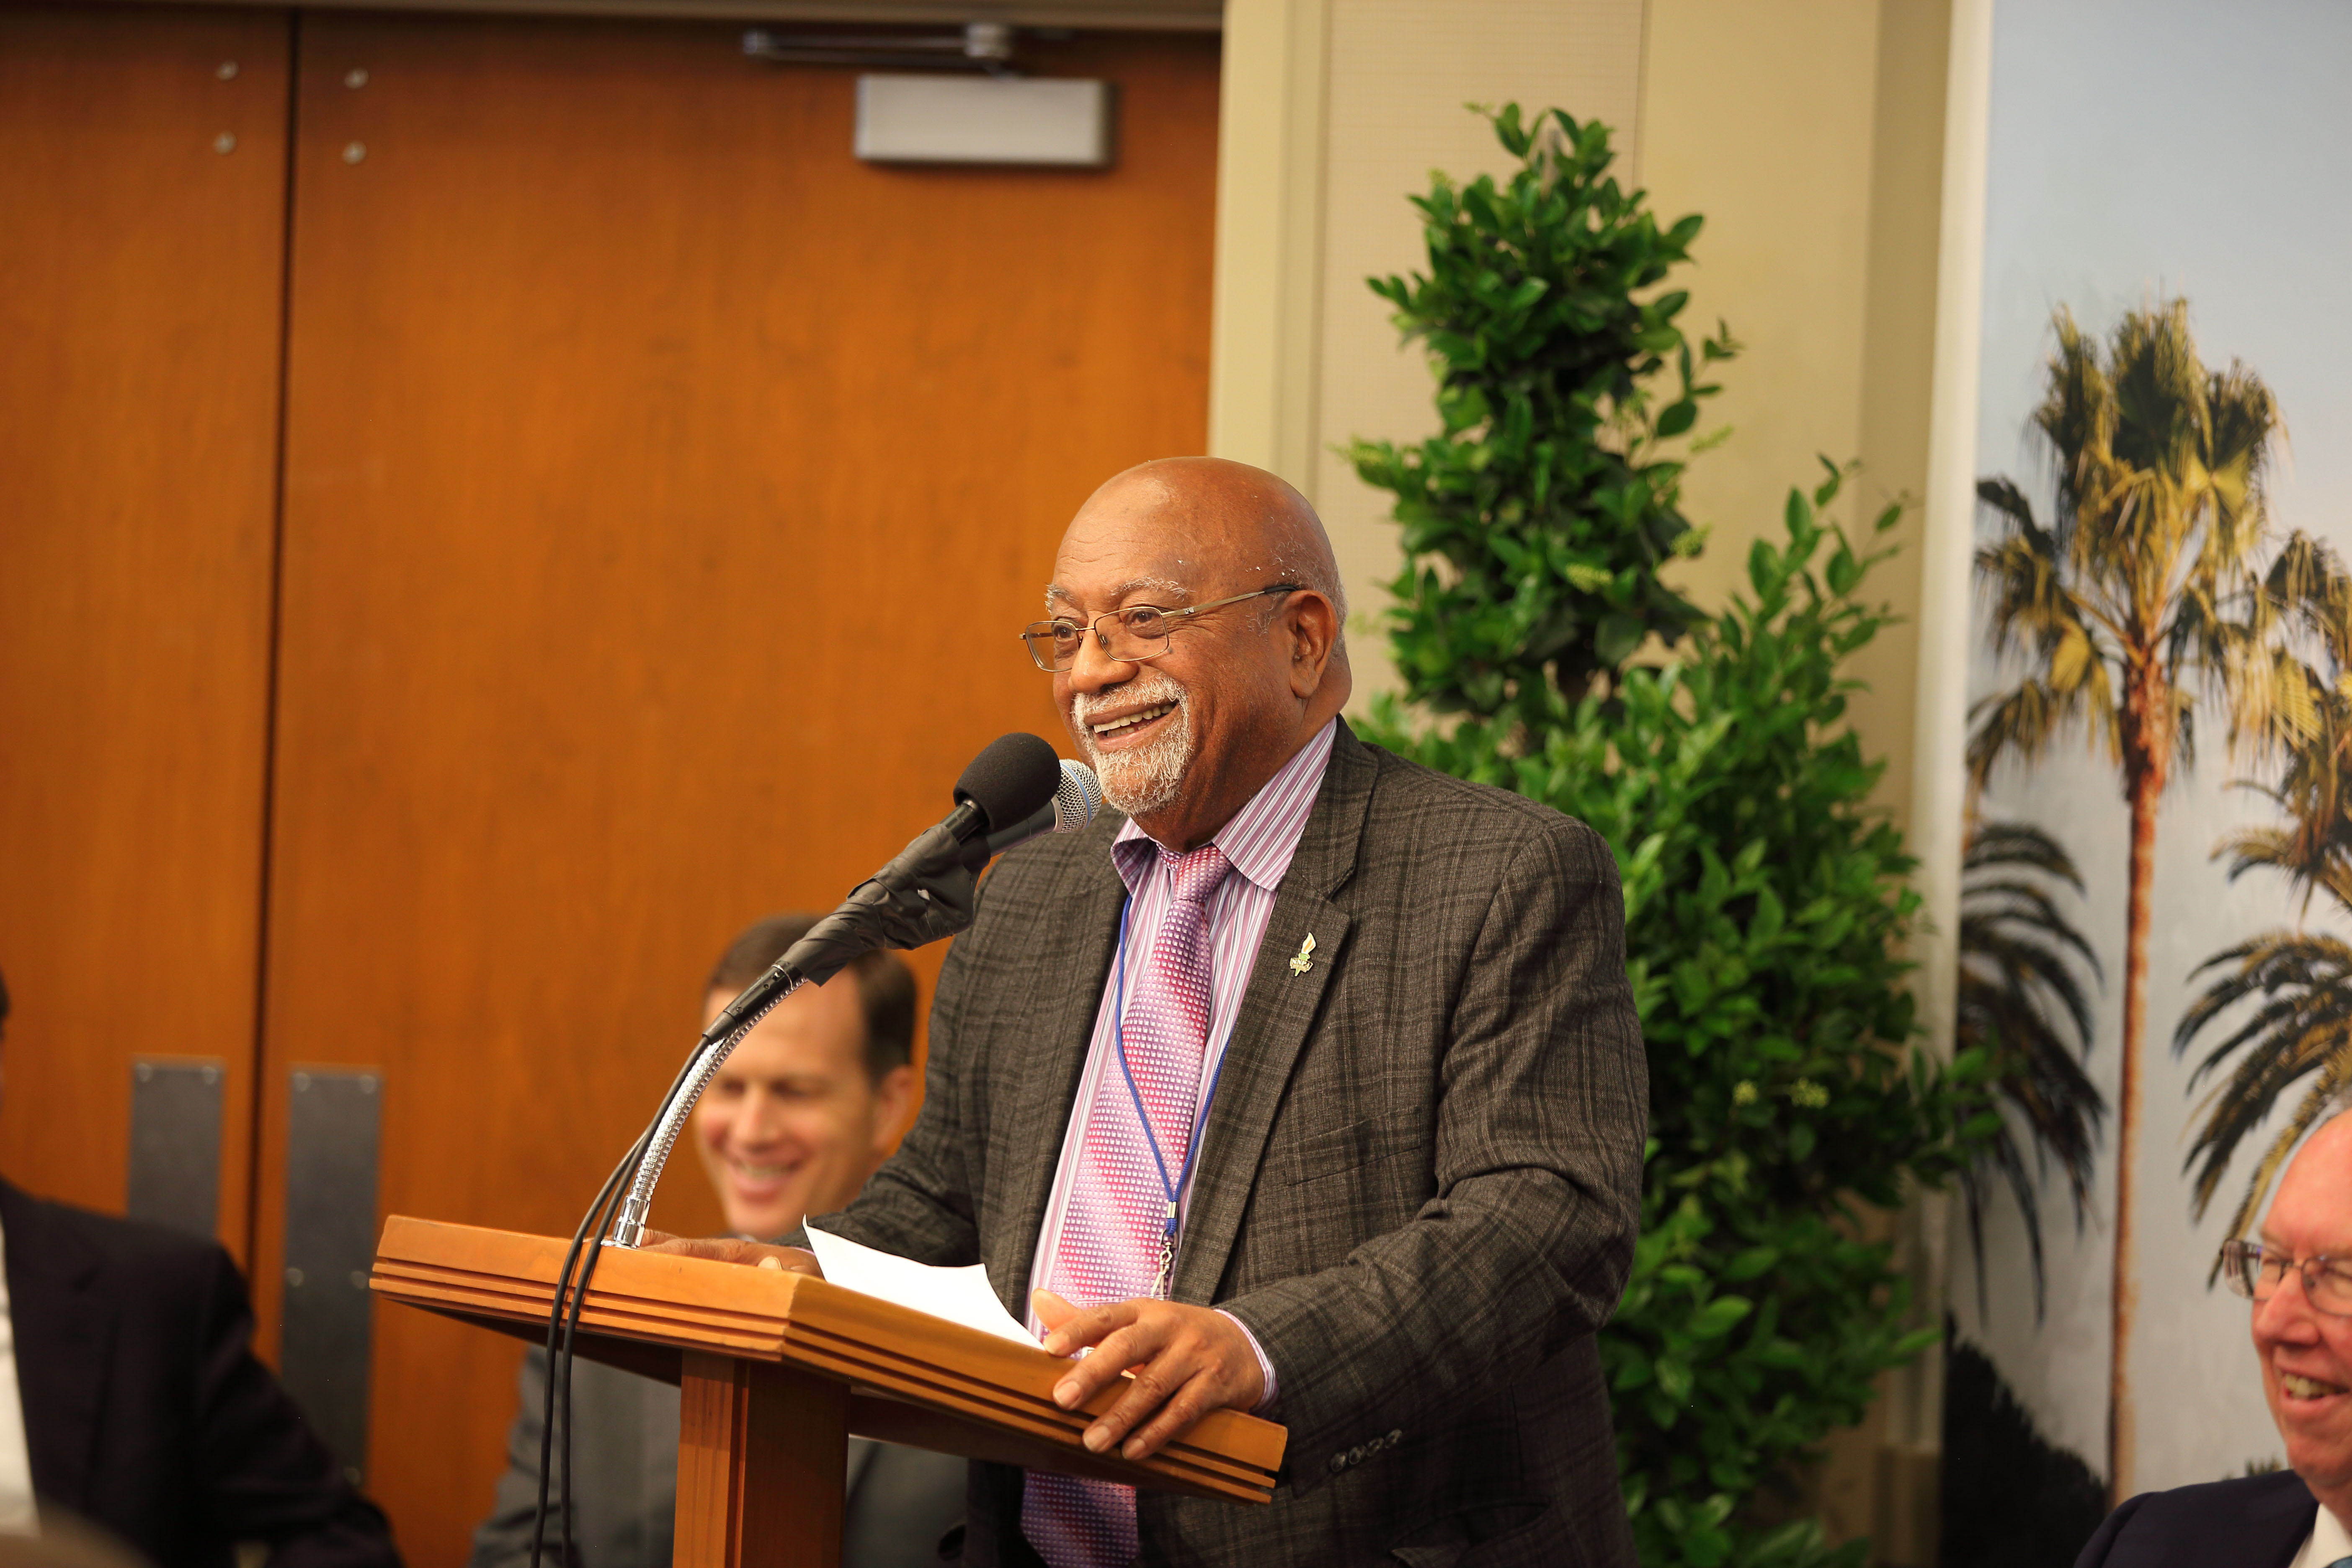 A friend of the Church for many years, Paul Cobb is the publisher of the Oakland Post. He also gave remarks during the May 6, 2019, news conference on the Oakland California Temple.